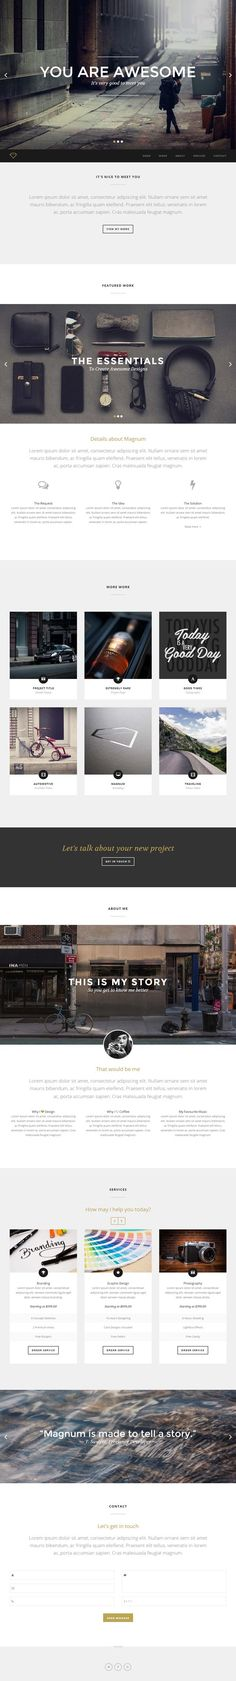 Magnum - Creative Portfolio Template, http://themeforest.net/item/magnum-creative-portfolio-template/6458953?ref=graphicdesignjunction&ref=graphicdesignjunction&clickthrough_id=196032247&redirect_back=true